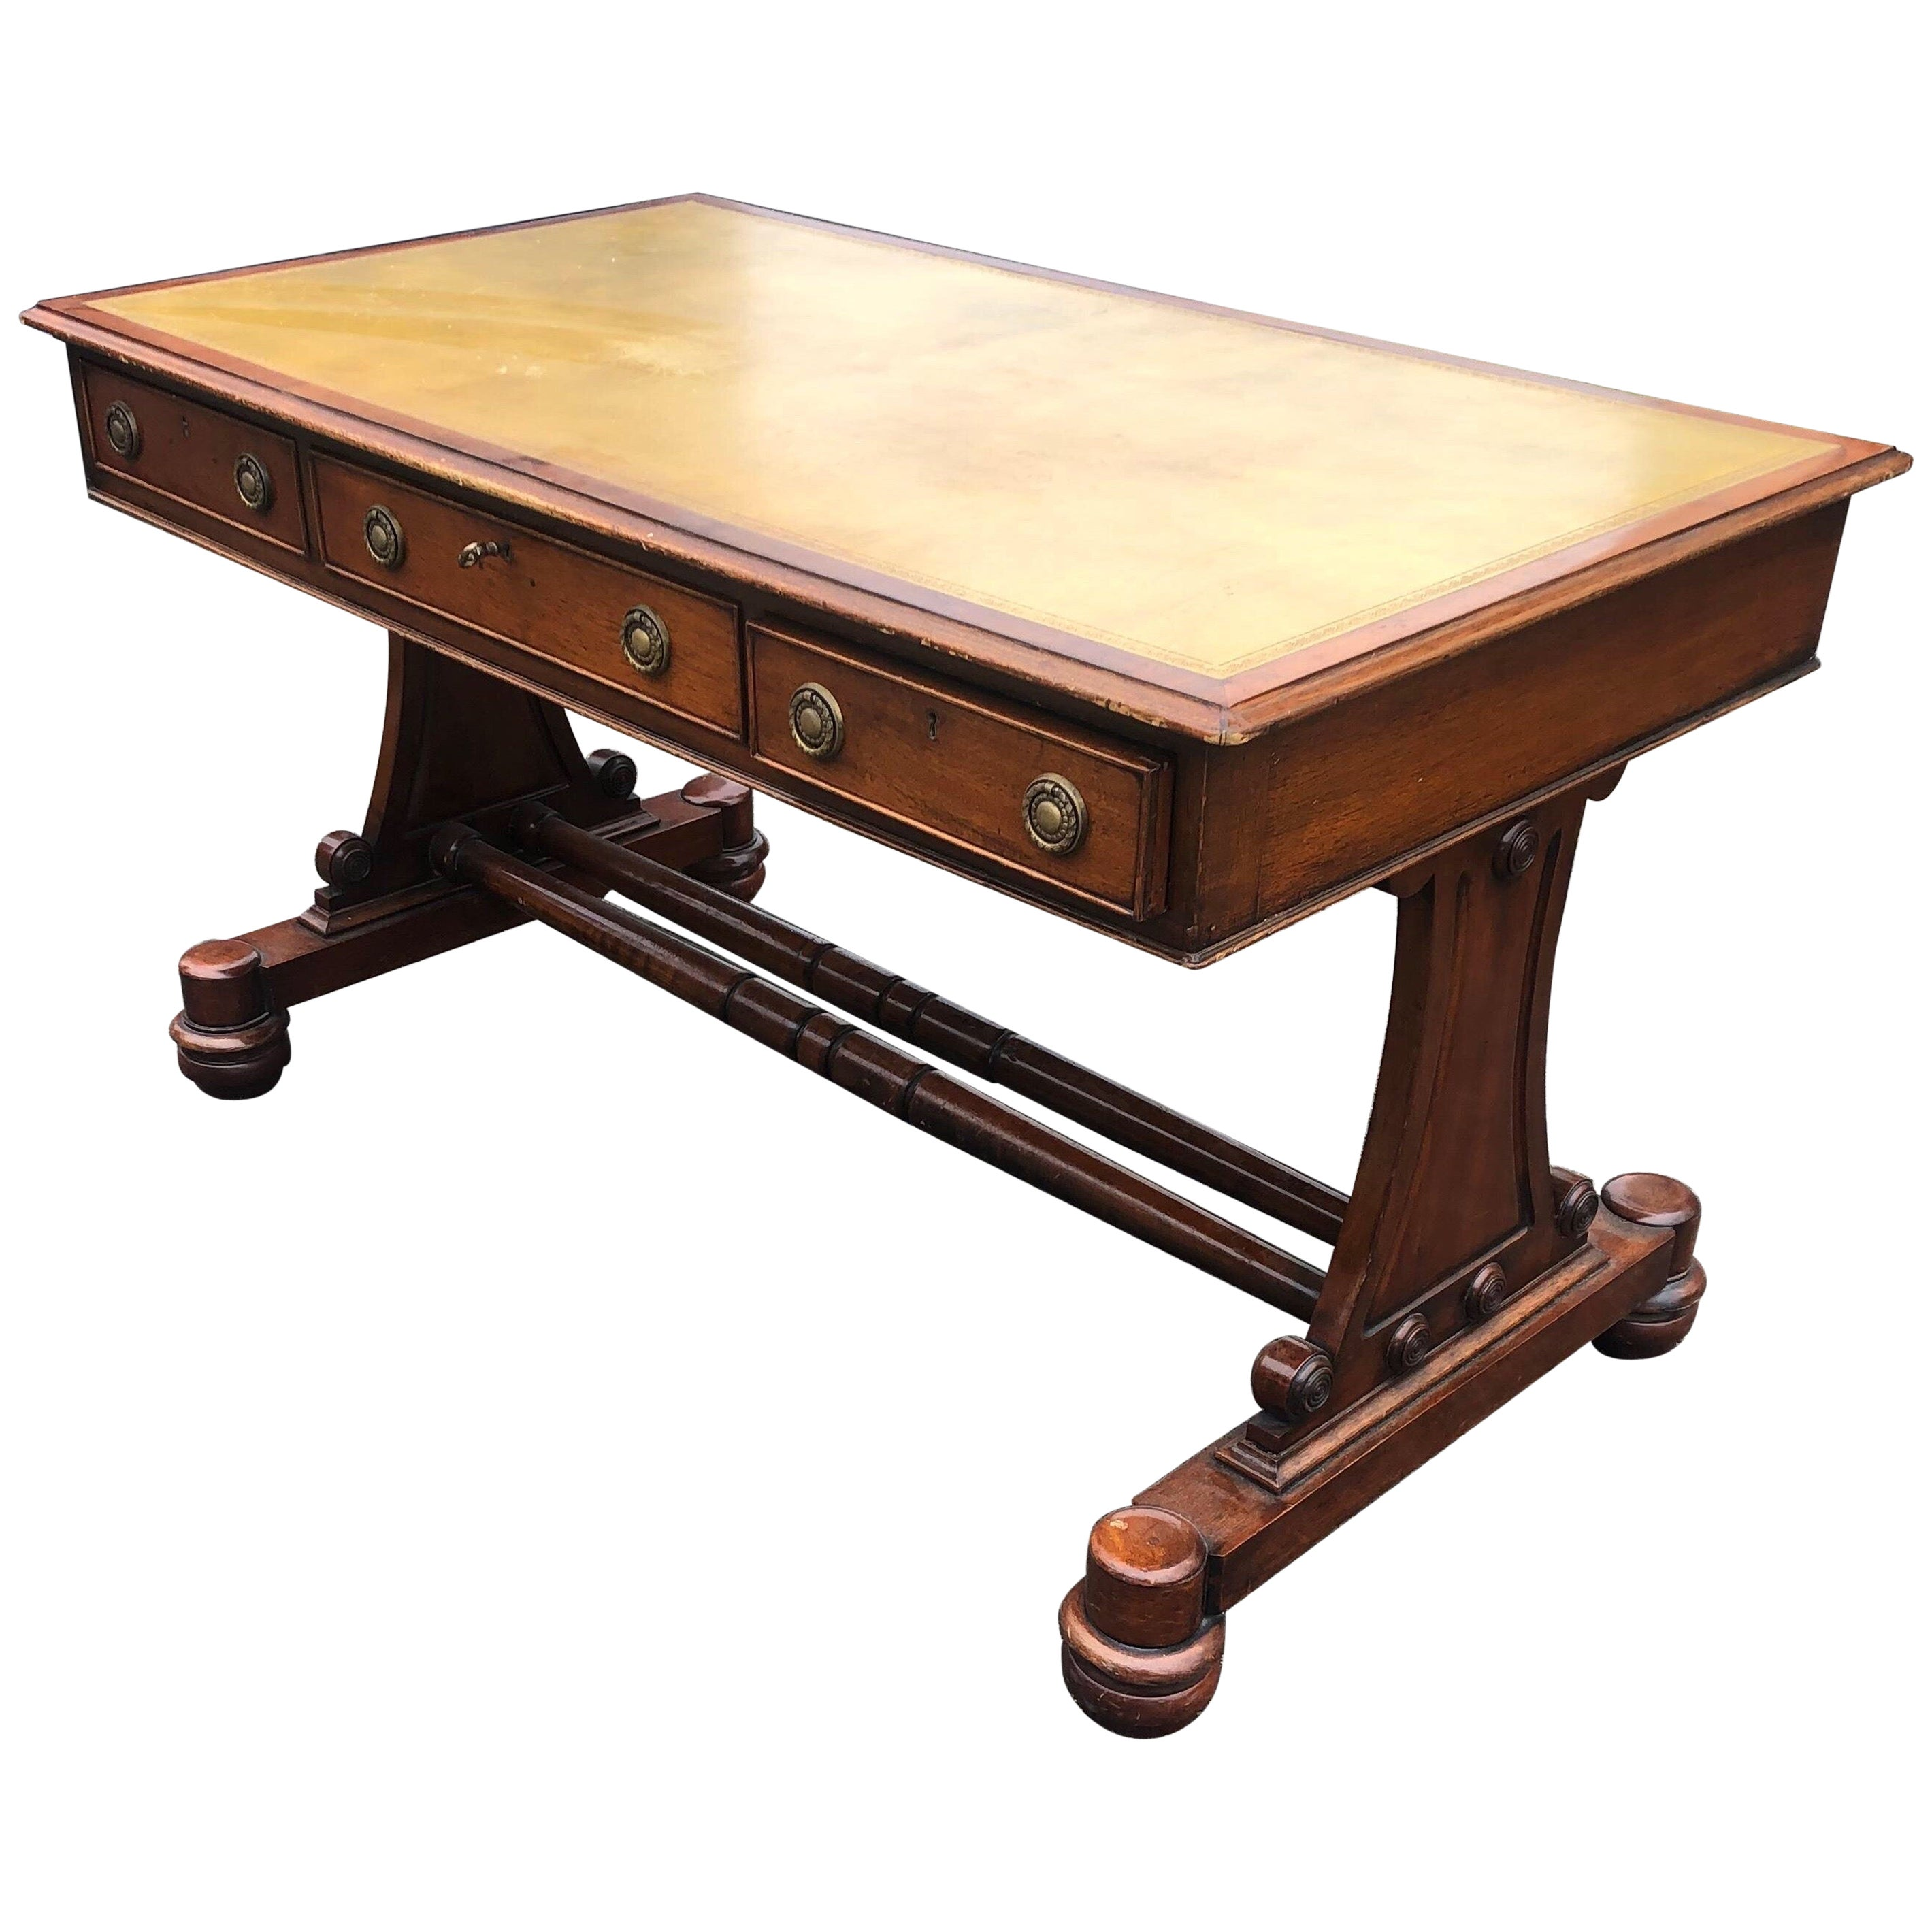 19th Century English Regency Mahogany Leather Top Writing Desk